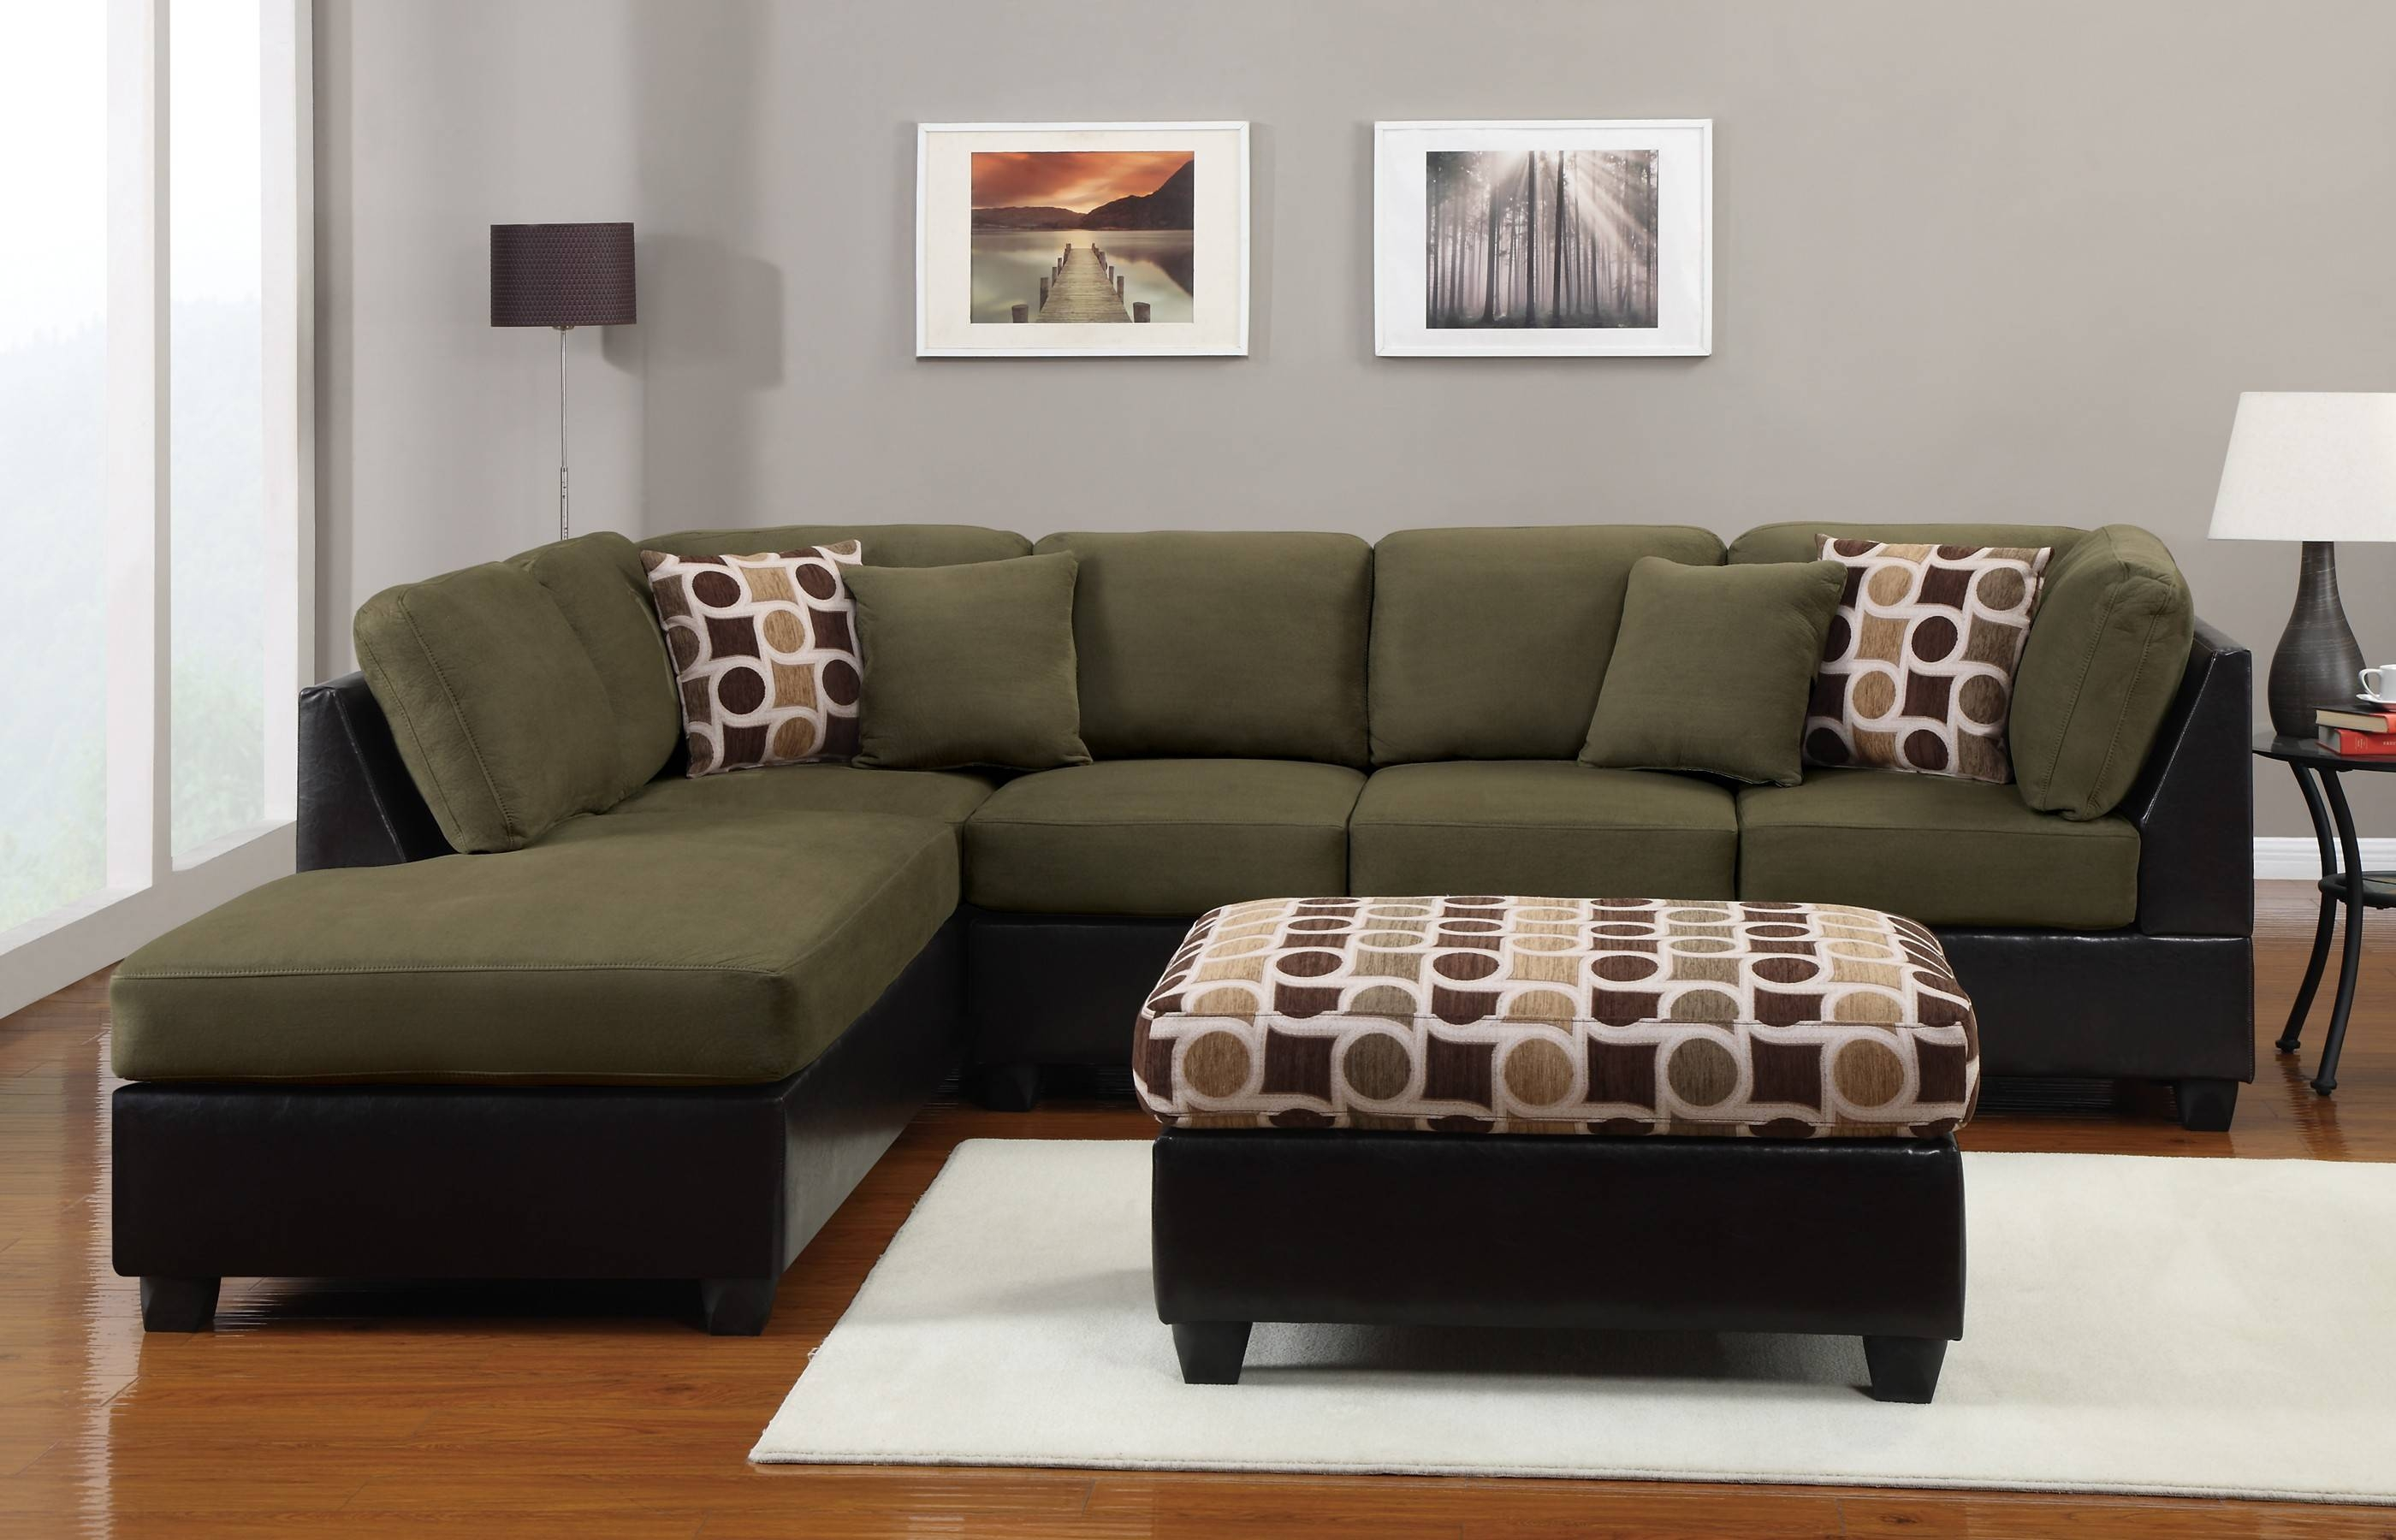 33 Best Ideas of 3 Piece Sectional Sofa Slipcovers